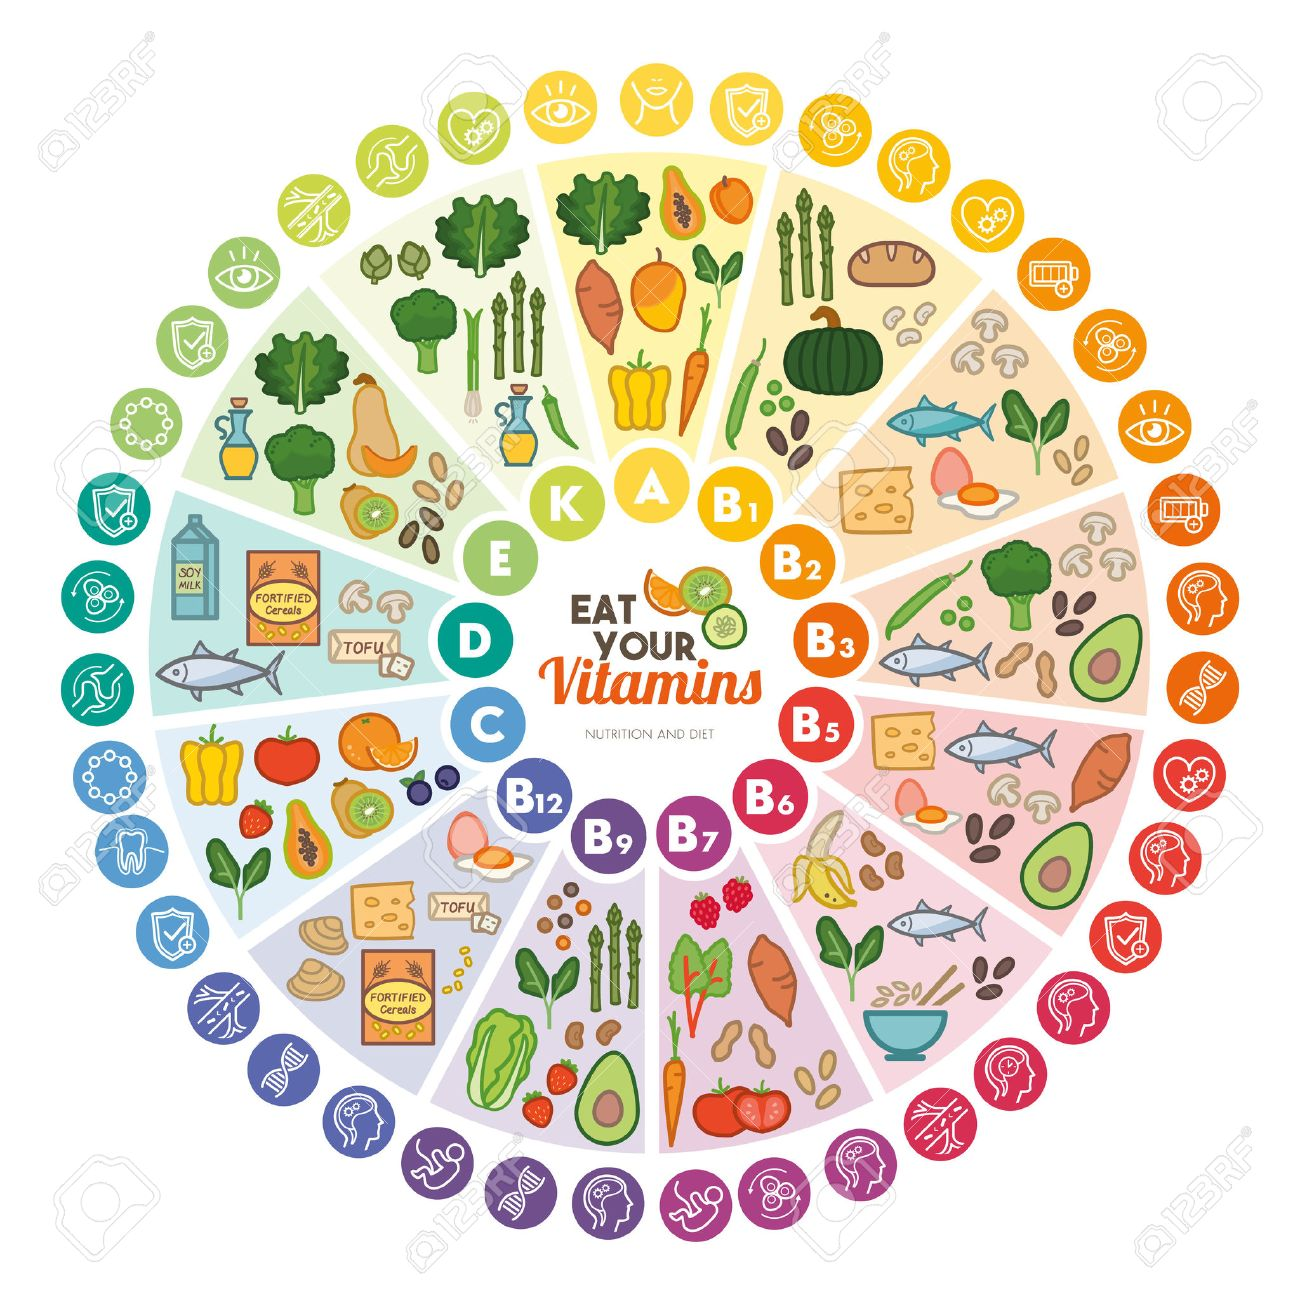 Image result for Vitamins Healthy food